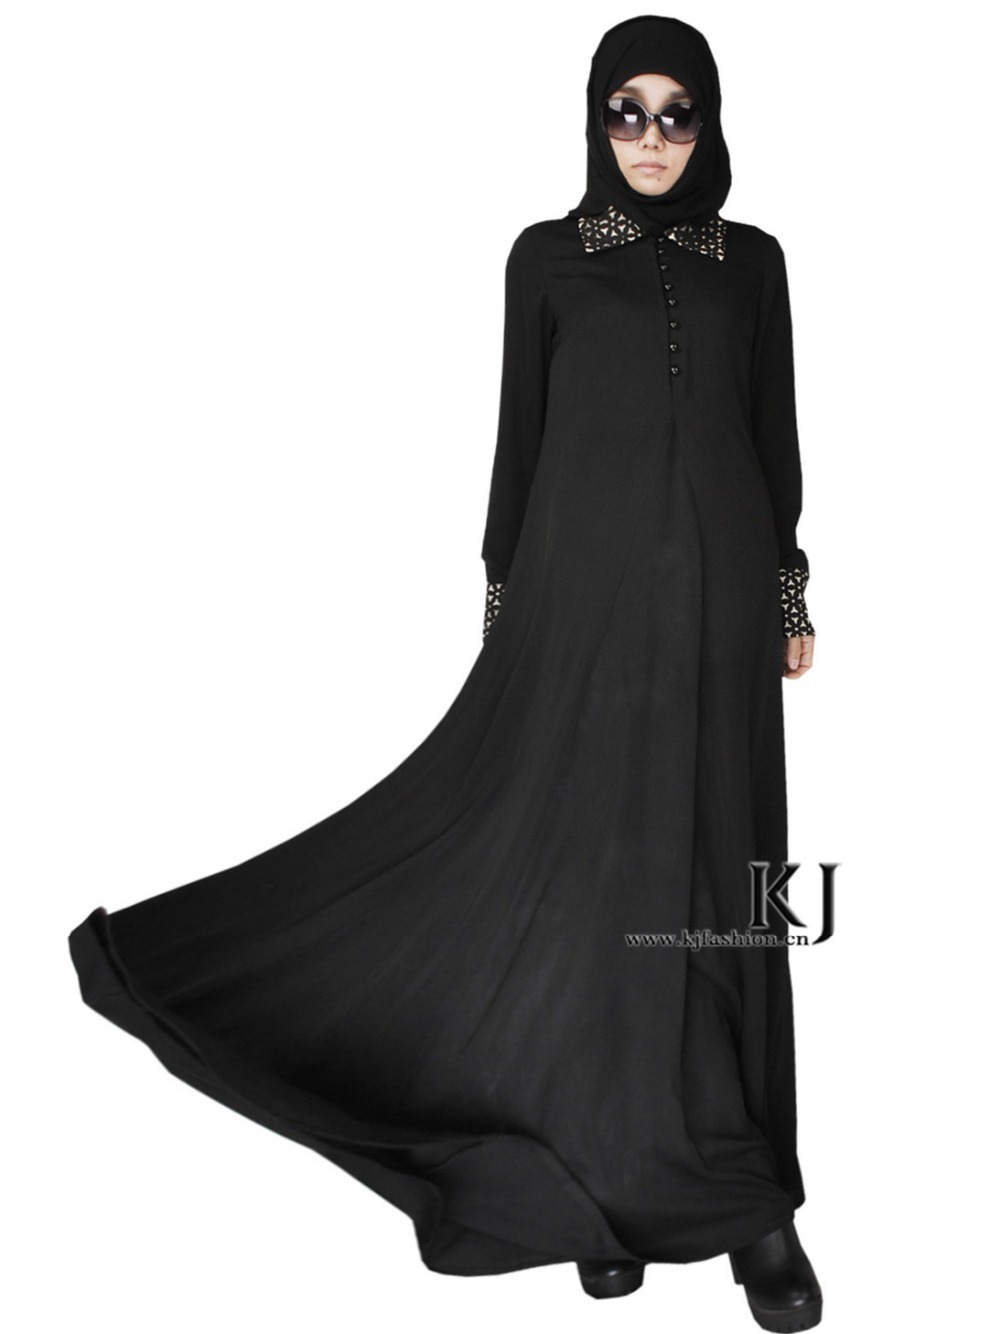 New arrival womens abaya arabic dress plus size single breasted muslim dress plus size islamic clothingОдежда и ак�е��уары<br><br><br>Aliexpress